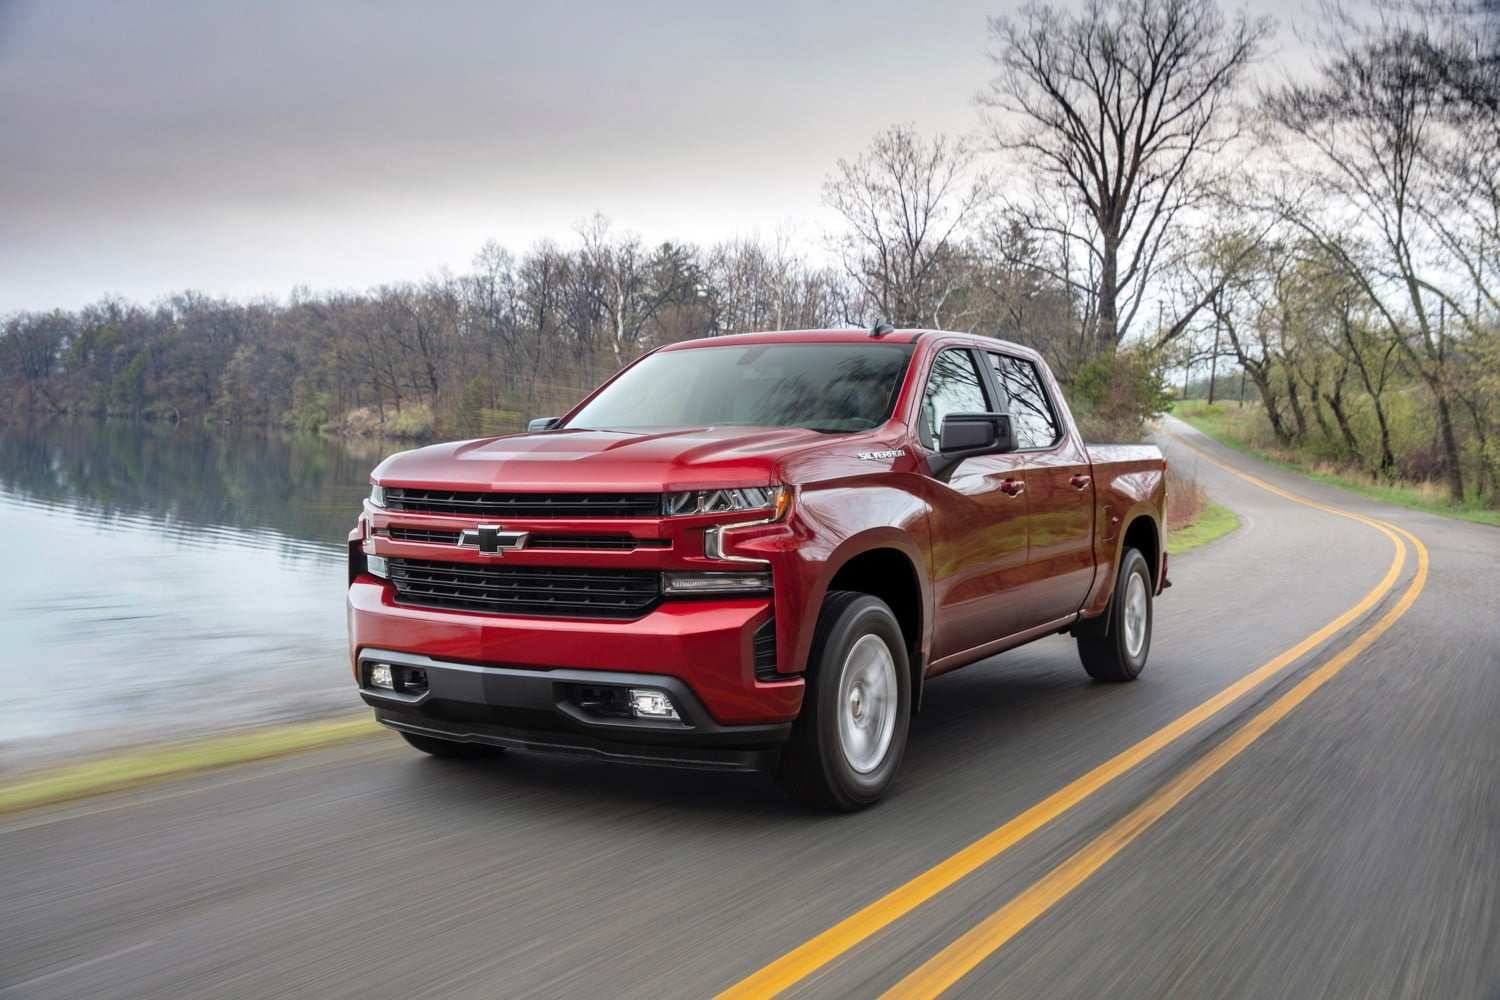 95 All New 2019 Chevrolet Silverado Diesel Review with 2019 Chevrolet Silverado Diesel